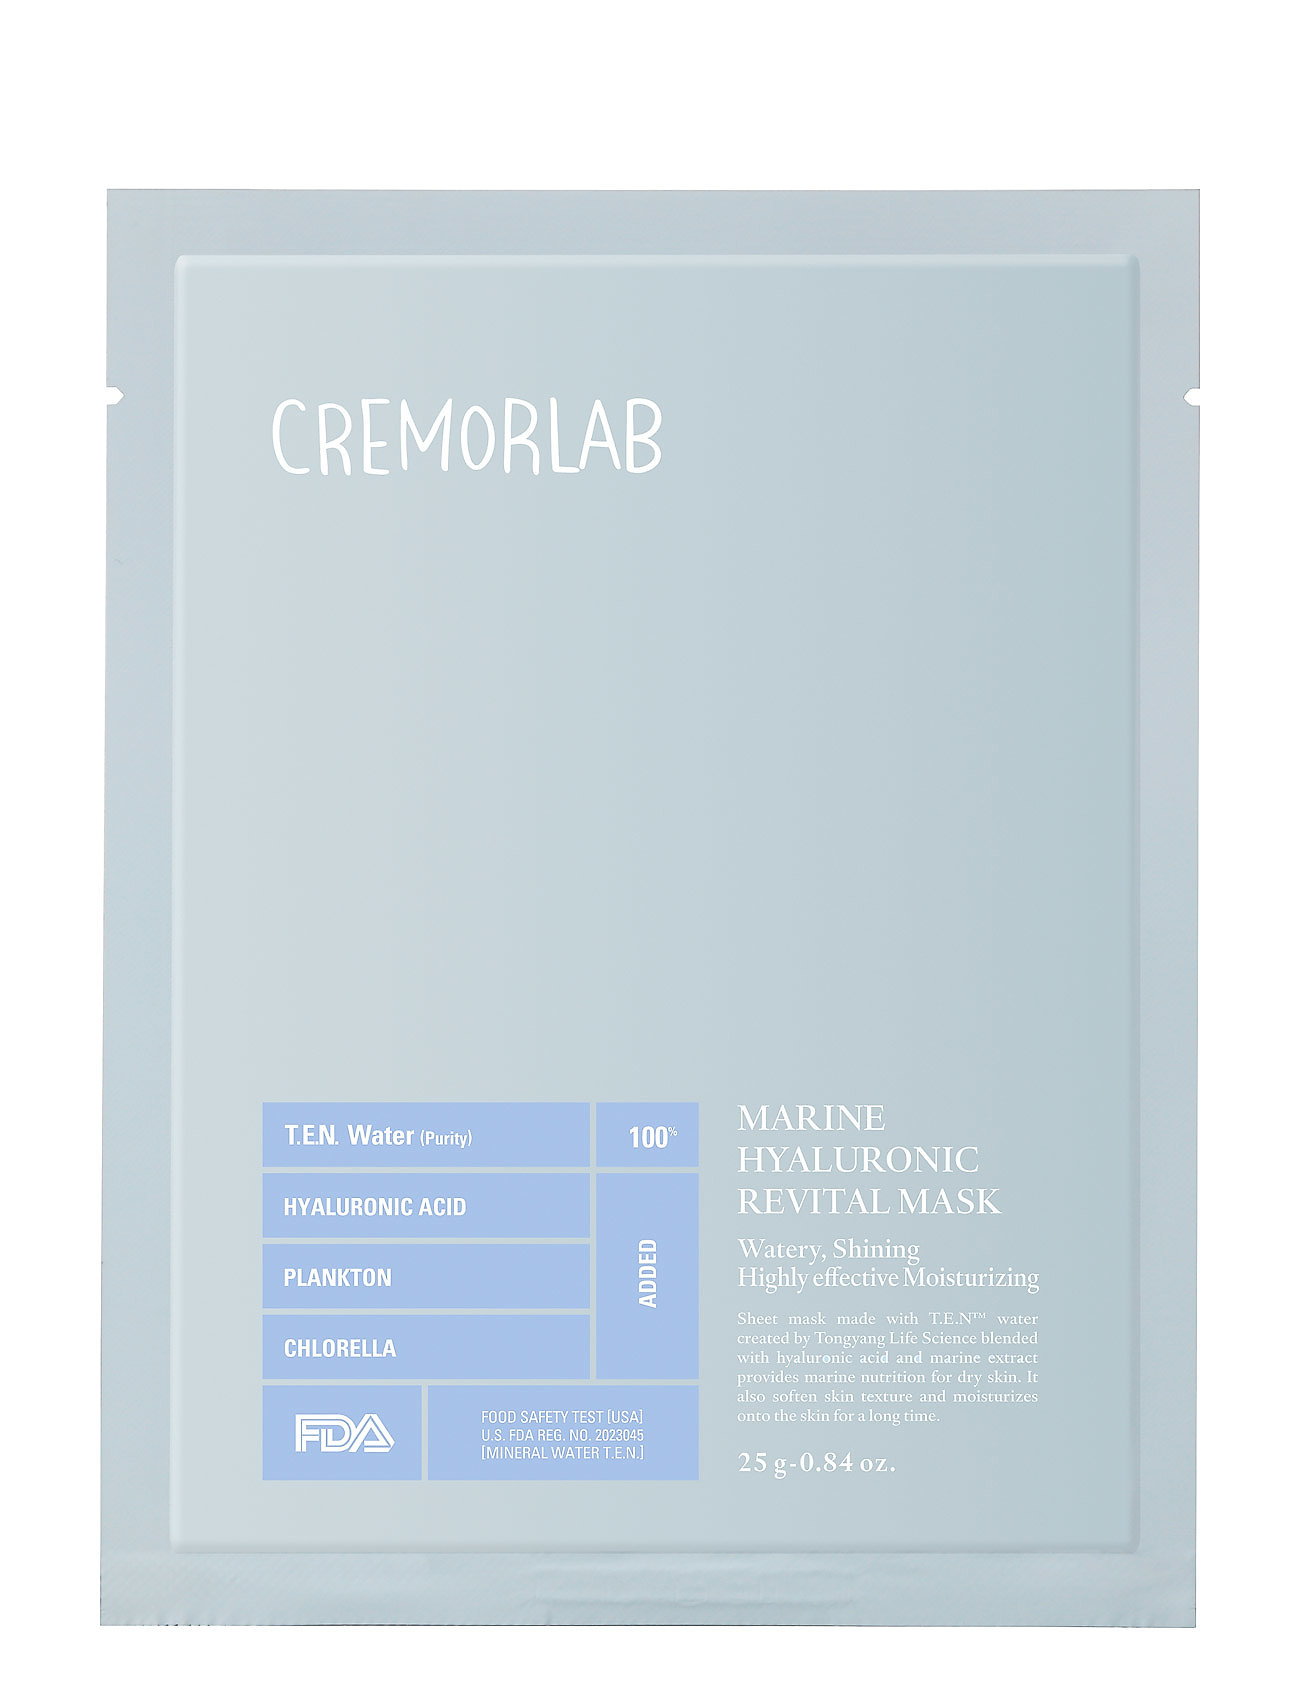 Image of T.E.N. Water Marine Hyaluronic Revital Mask Beauty WOMEN Skin Care Face Sheet Mask Nude Cremorlab (3297684897)